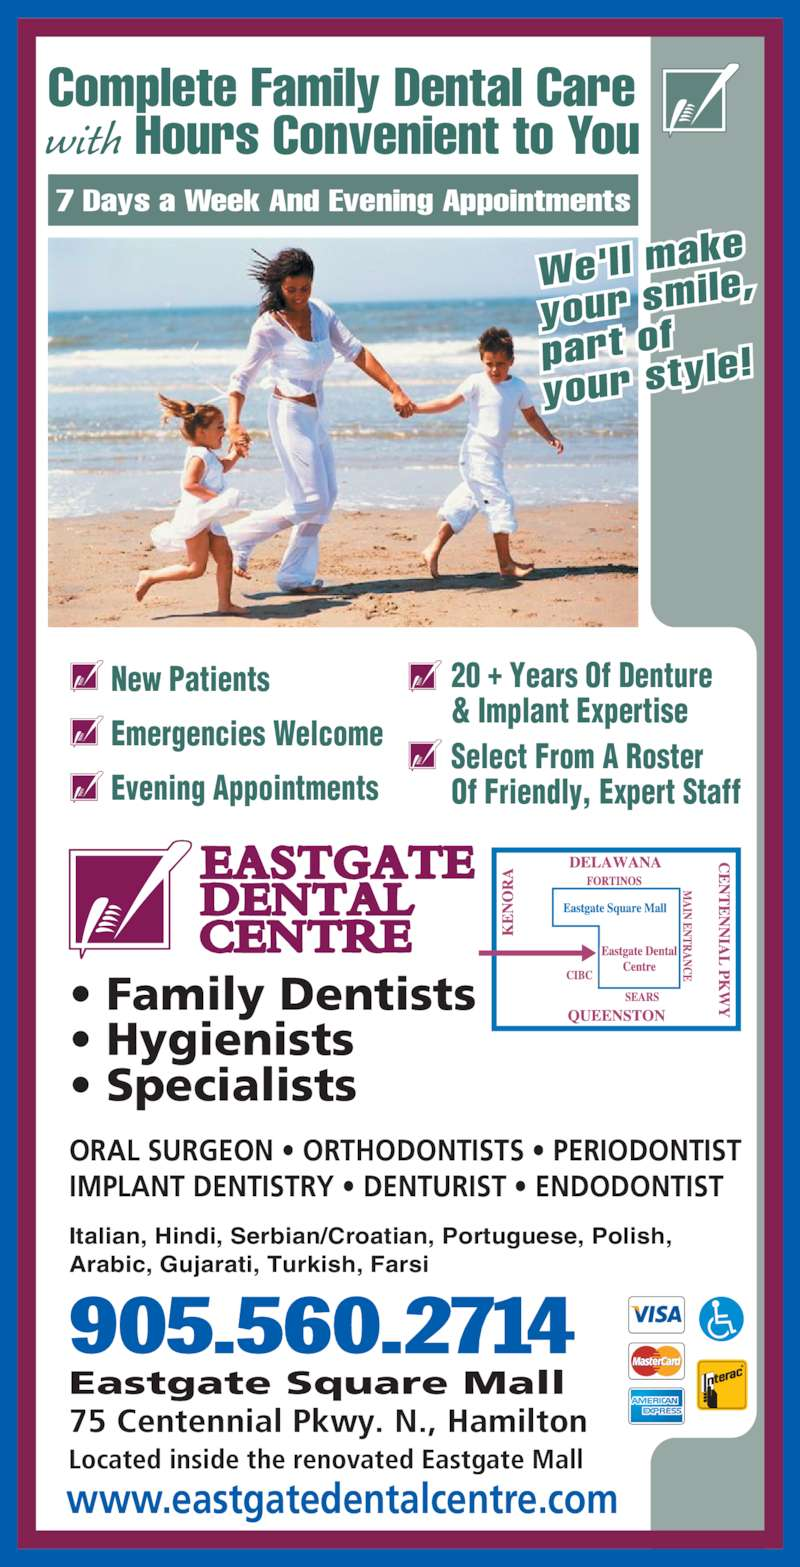 Eastgate Dental Centre (905-560-2714) - Display Ad - Complete Family Dental Care with Hours Convenient to You www.eastgatedentalcentre.com 75 Centennial Pkwy. N., Hamilton Located inside the renovated Eastgate Mall Eastgate Square Mall • Family Dentists • Hygienists • Specialists ORAL SURGEON • ORTHODONTISTS • PERIODONTIST IMPLANT DENTISTRY • DENTURIST • ENDODONTIST 7 Days a Week And Evening Appointments 905.560.2714 20 + Years Of Denture & Implant Expertise Select From A Roster Of Friendly, Expert Staff New Patients Emergencies Welcome Evening Appointments Italian, Hindi, Serbian/Croatian, Portuguese, Polish, Arabic, Gujarati, Turkish, Farsi We'll mak your smi le, part of your styl e!